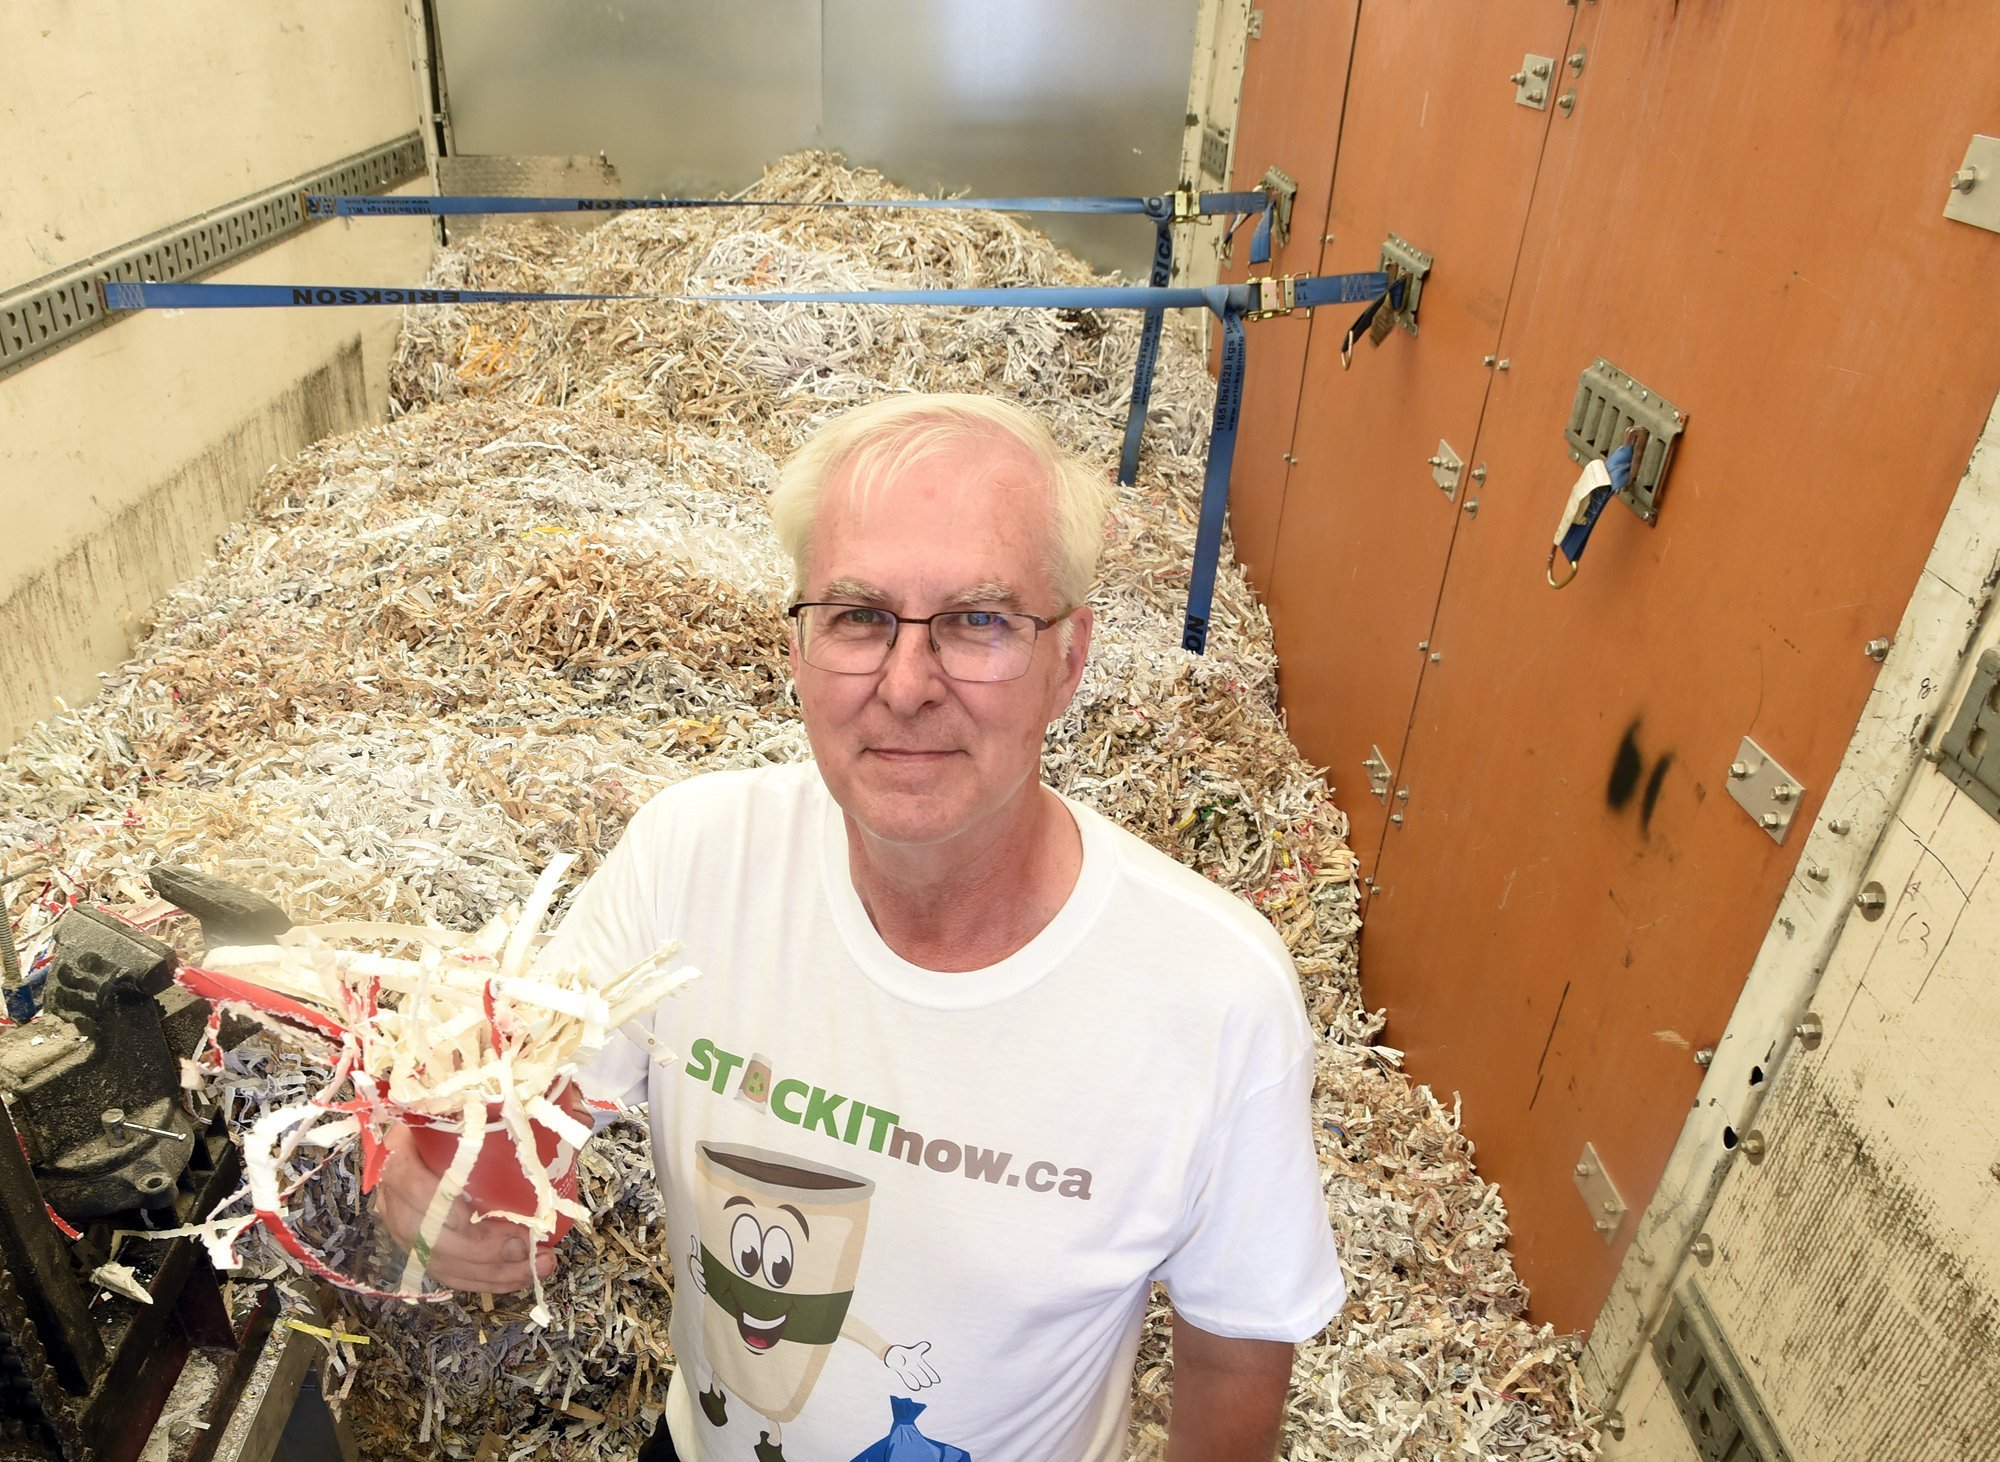 Carbon Neutral Shredding, owner Ian Chandler, in his truck with shredded coffee cups.